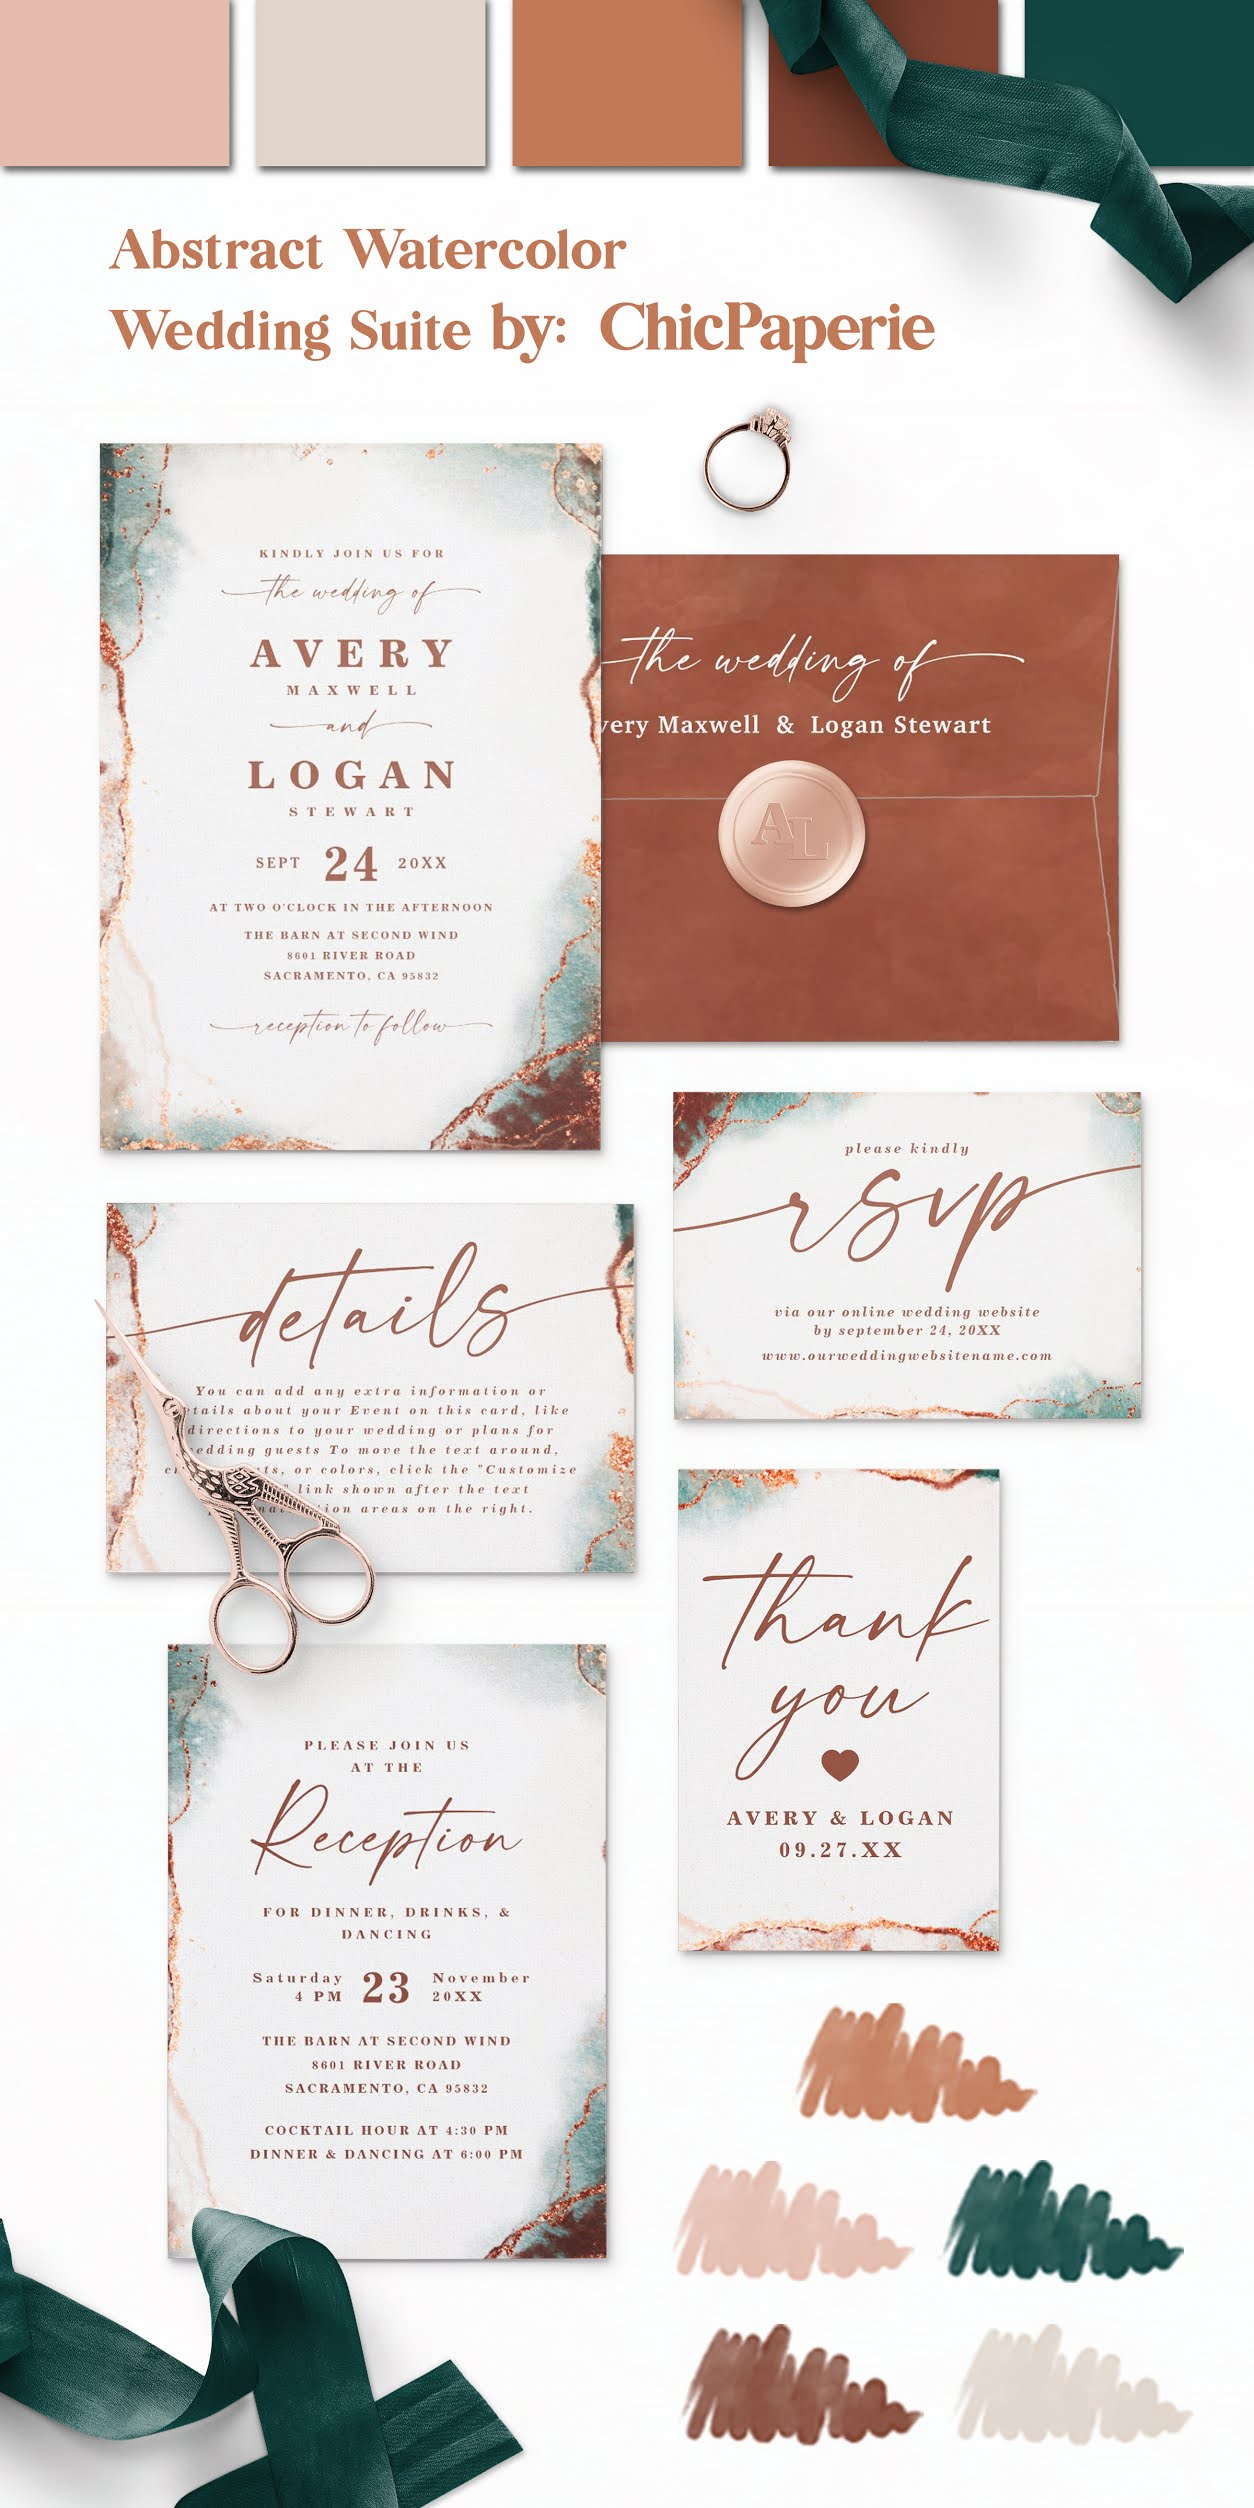 Abstract Watercolor Wedding Invitations: Modern and Elegant in the Terracotta Color Palette